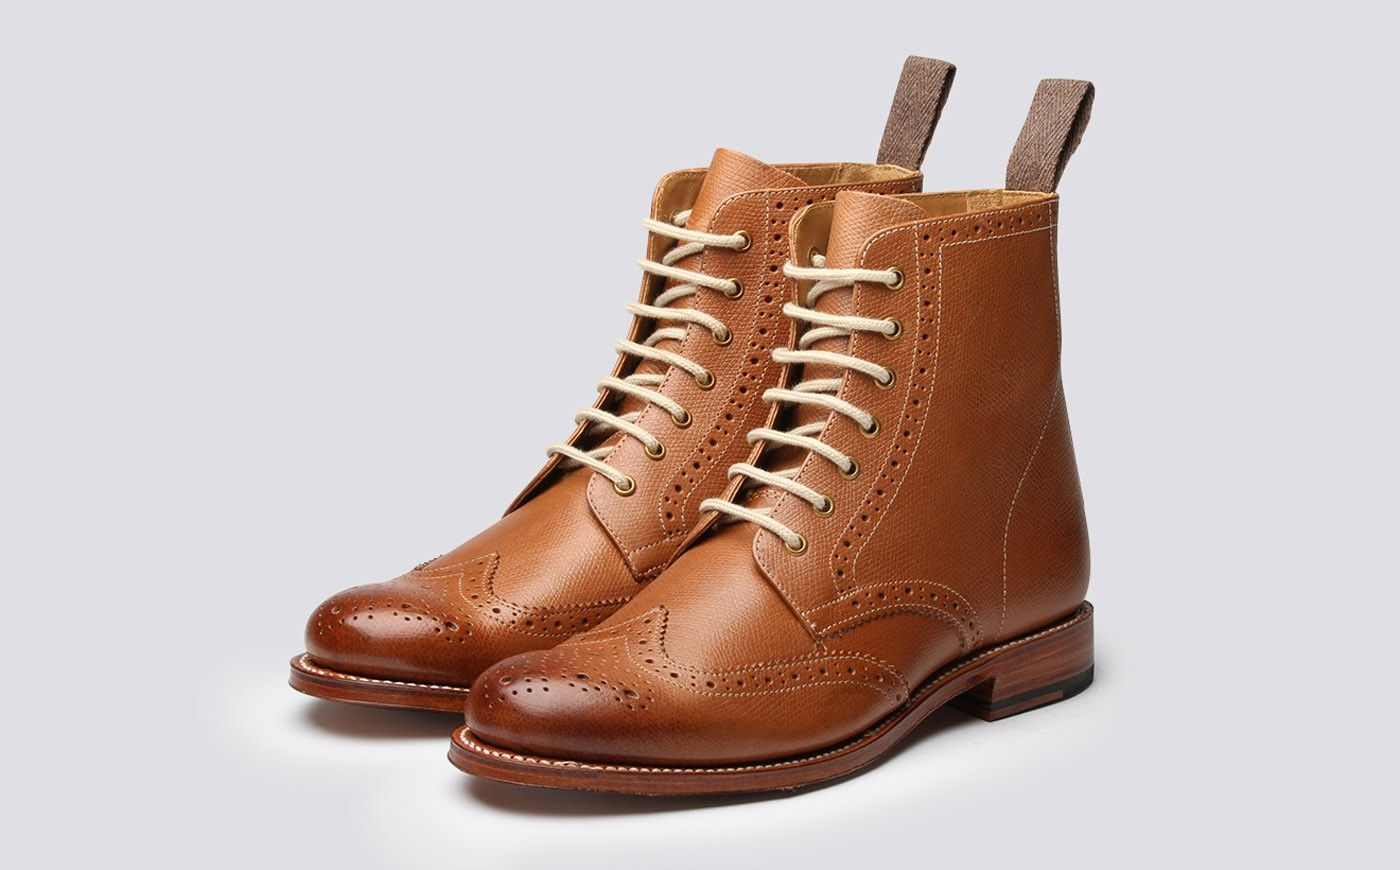 fafa15d8a65362 Womens Derby Boot in Tan Alpine Grain Leather with a Leather Sole ...